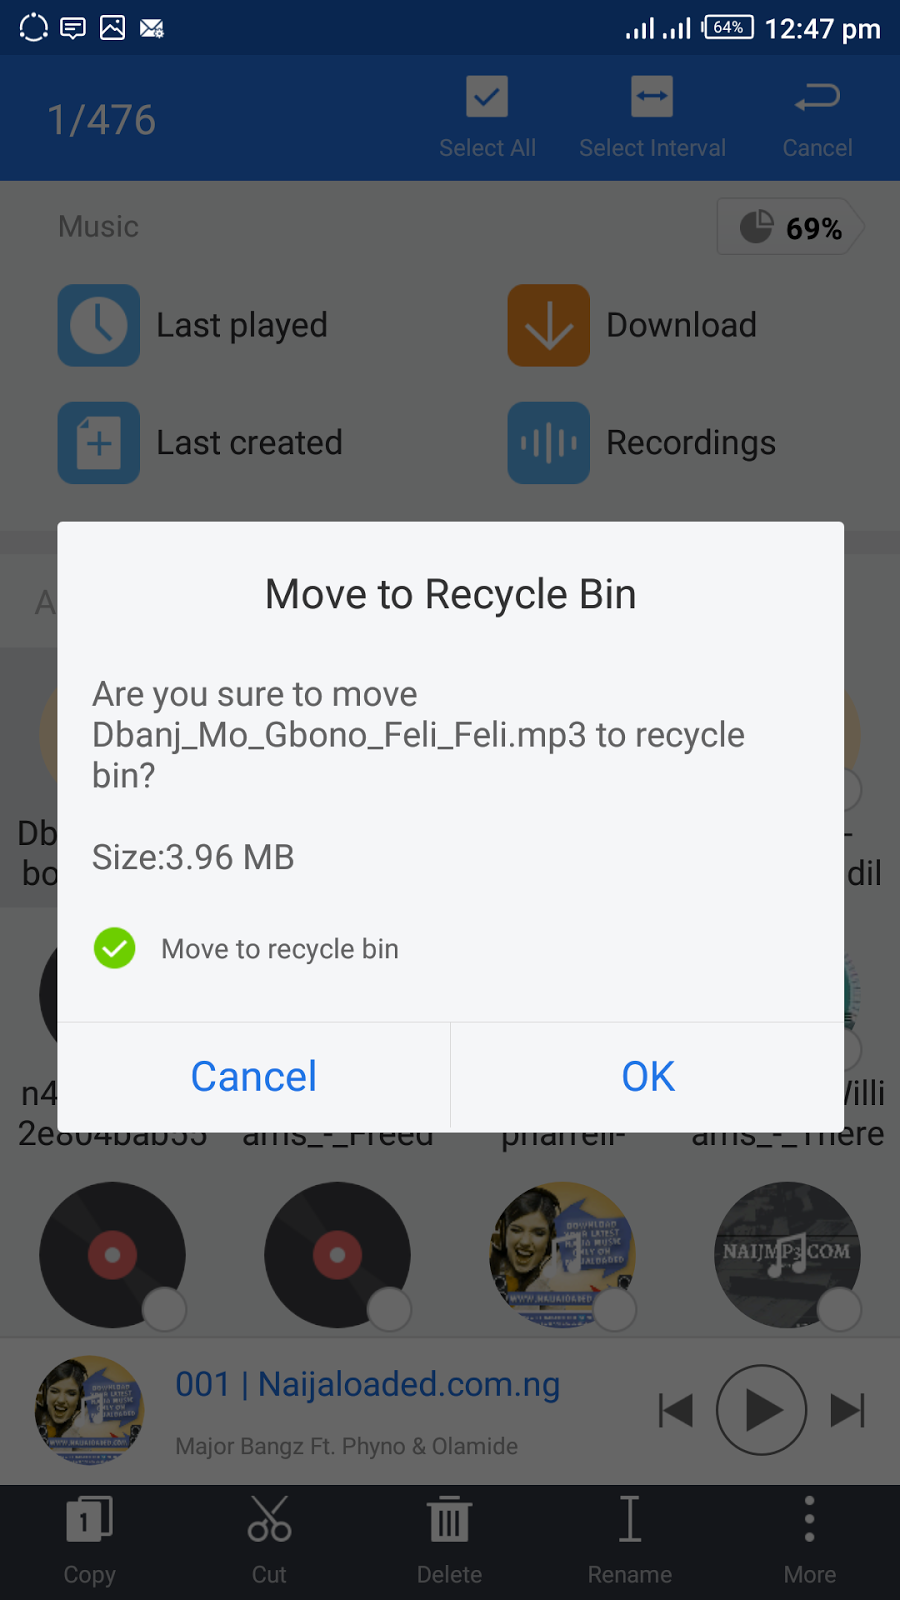 Deleting a file and moving it to the recycle bin